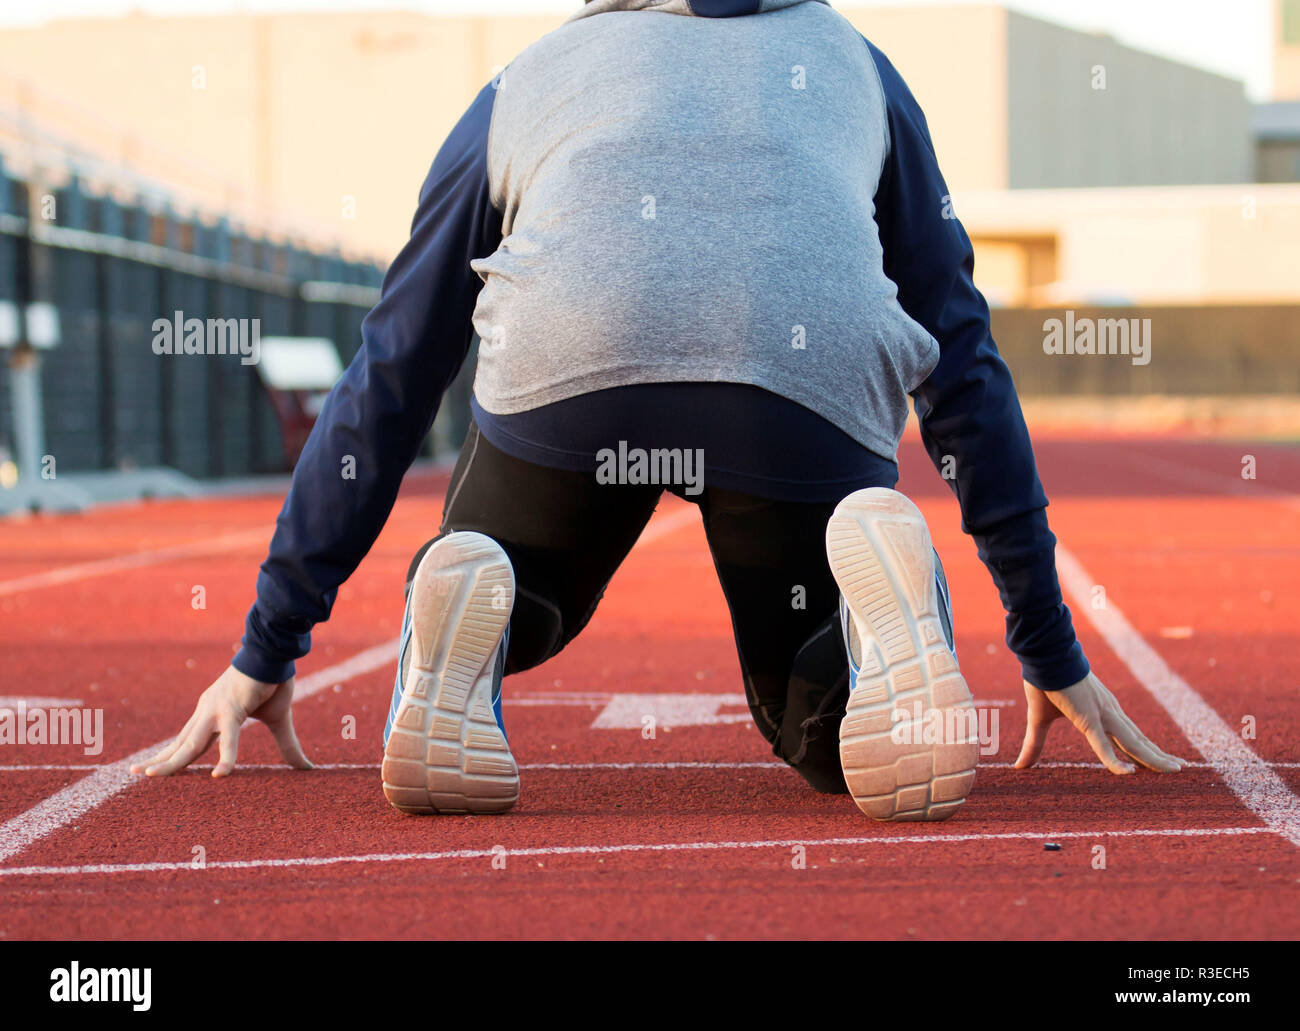 A sprinter training for track and field, is in the on your mark position ready to run the 100 meter dash - Stock Image